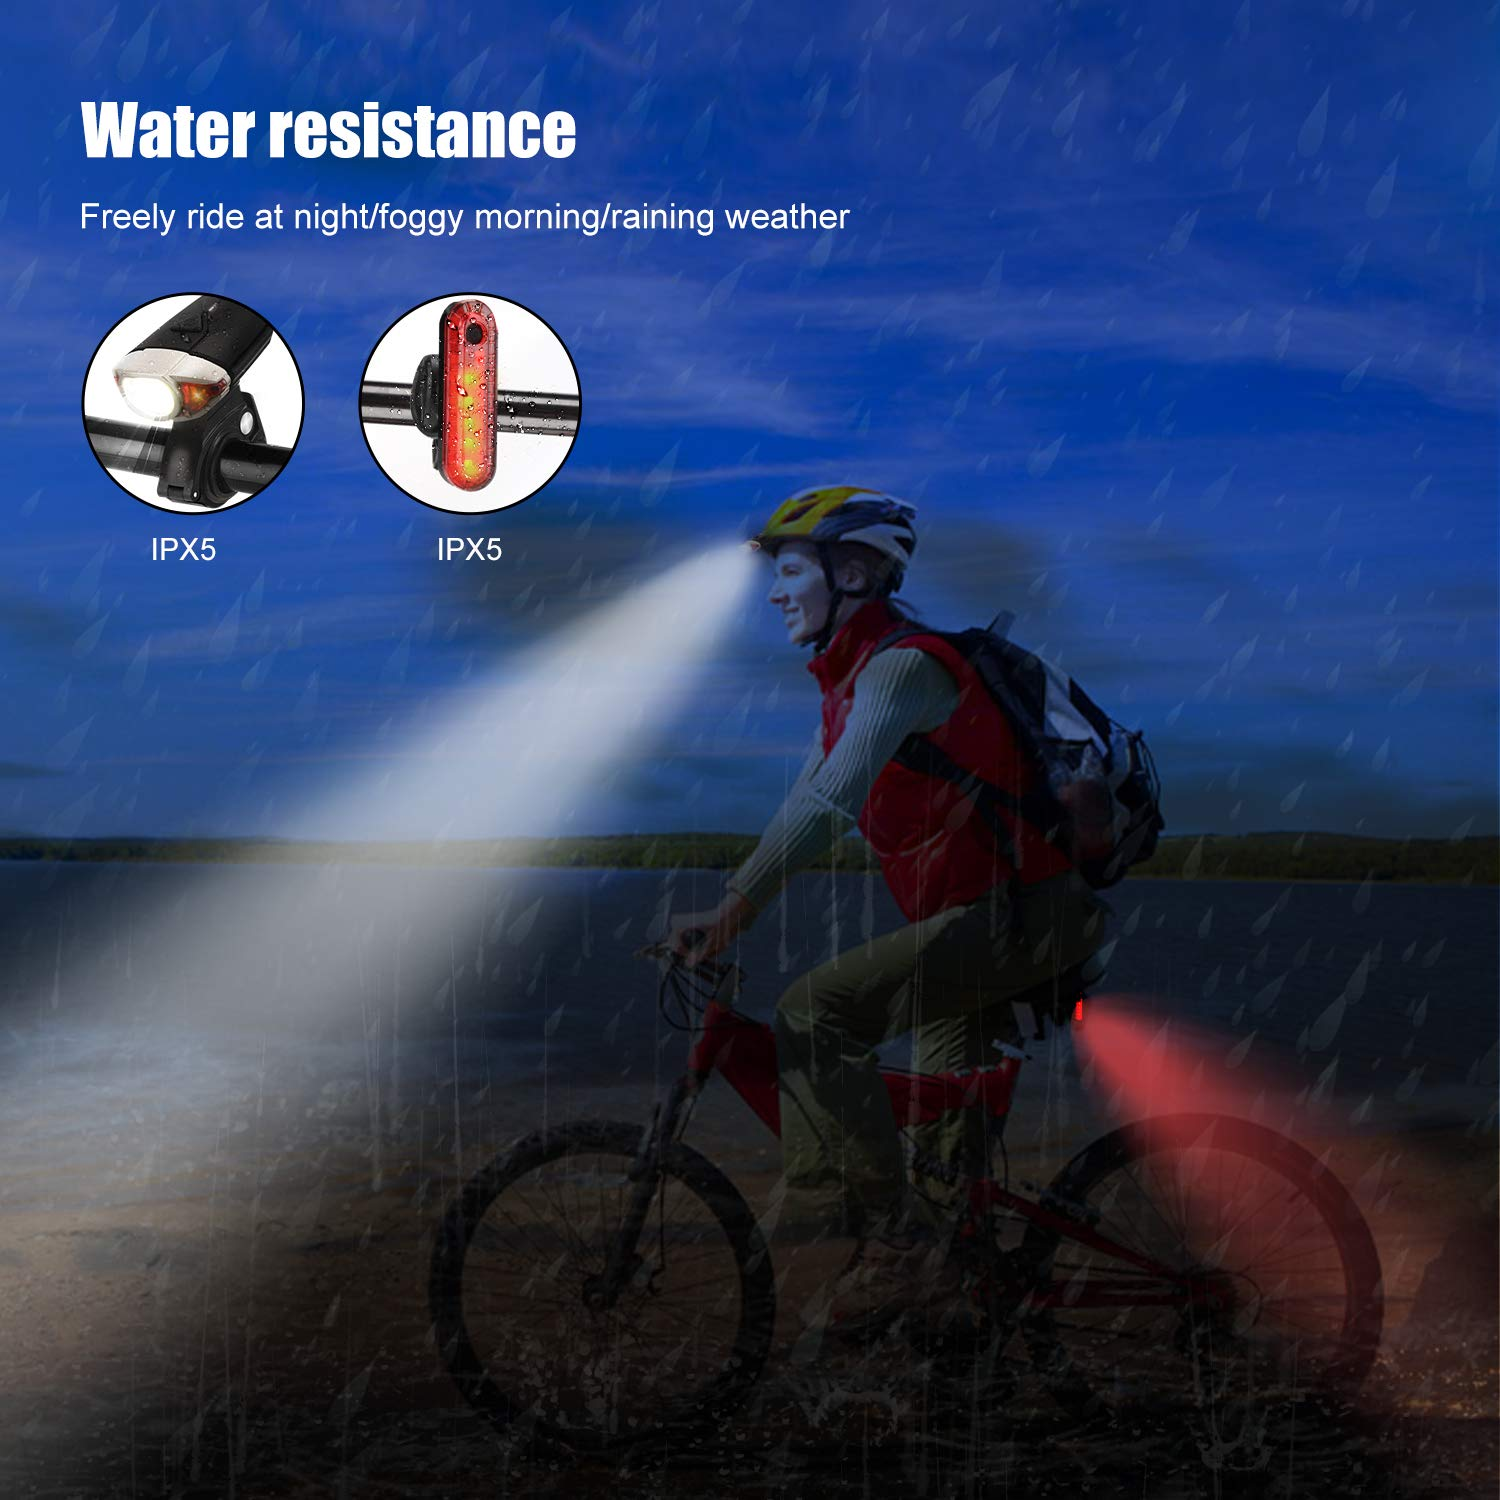 bedee Bike lights Set Rechargeable Super Lumens Cycle Headlight with Rear Bike Light Waterproof 3 Modes Bicycle Lights Mountain Bike Light/Road Bike Light for Night Riding